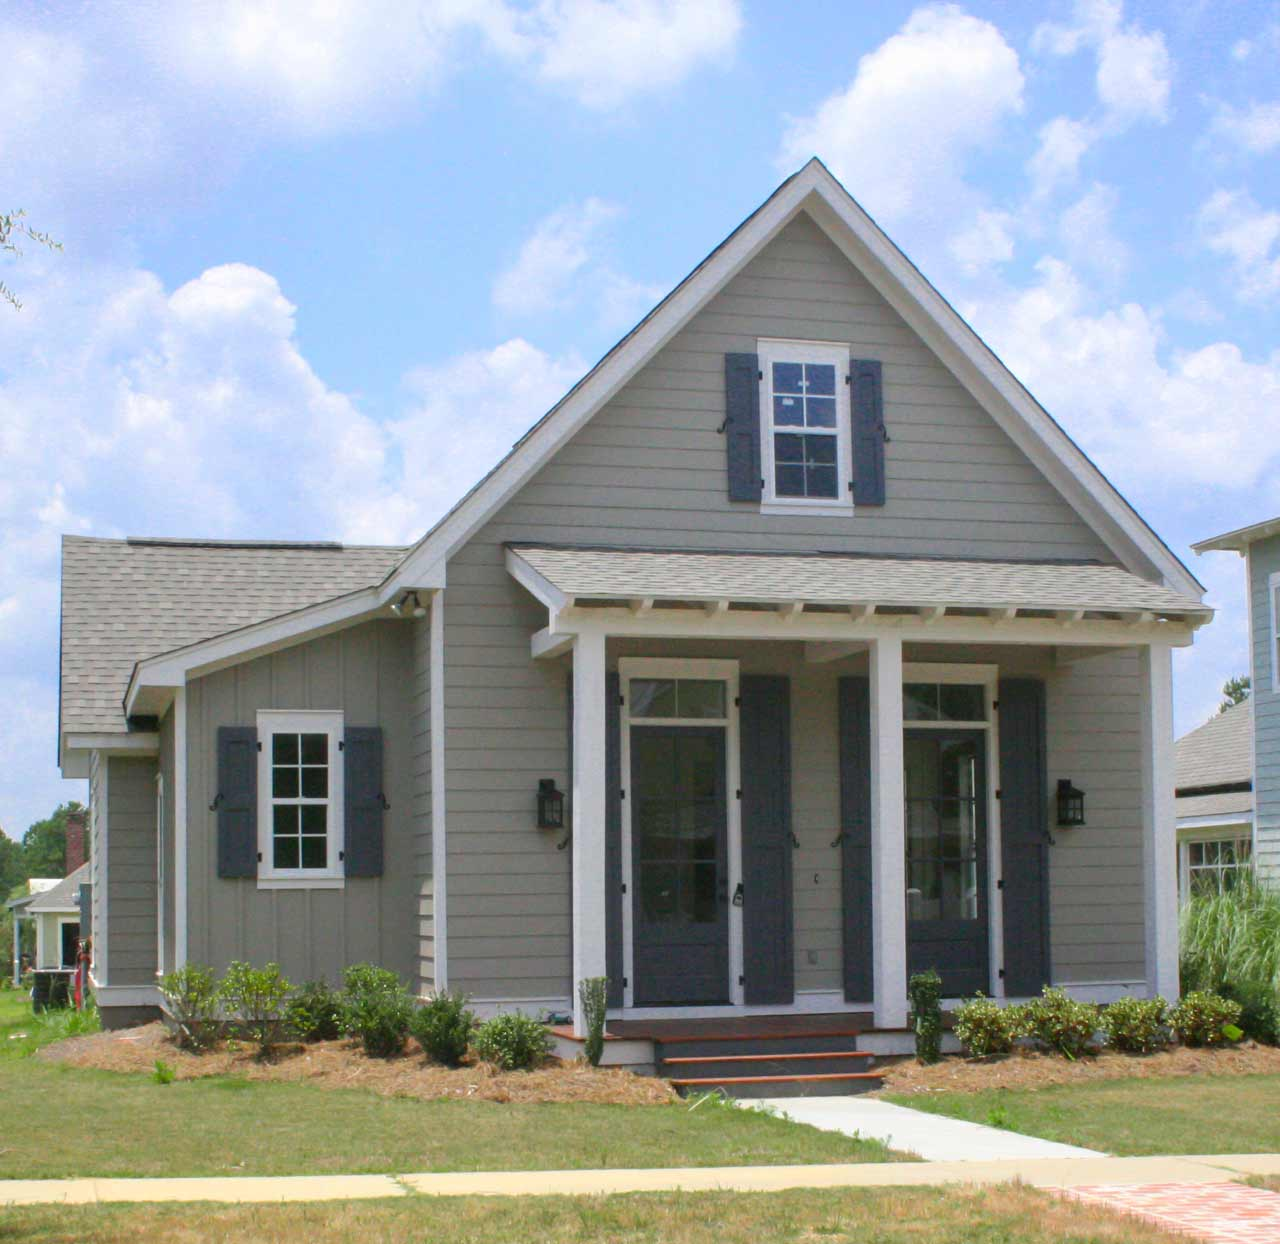 Cottage Style House Plans Plan: 50-297